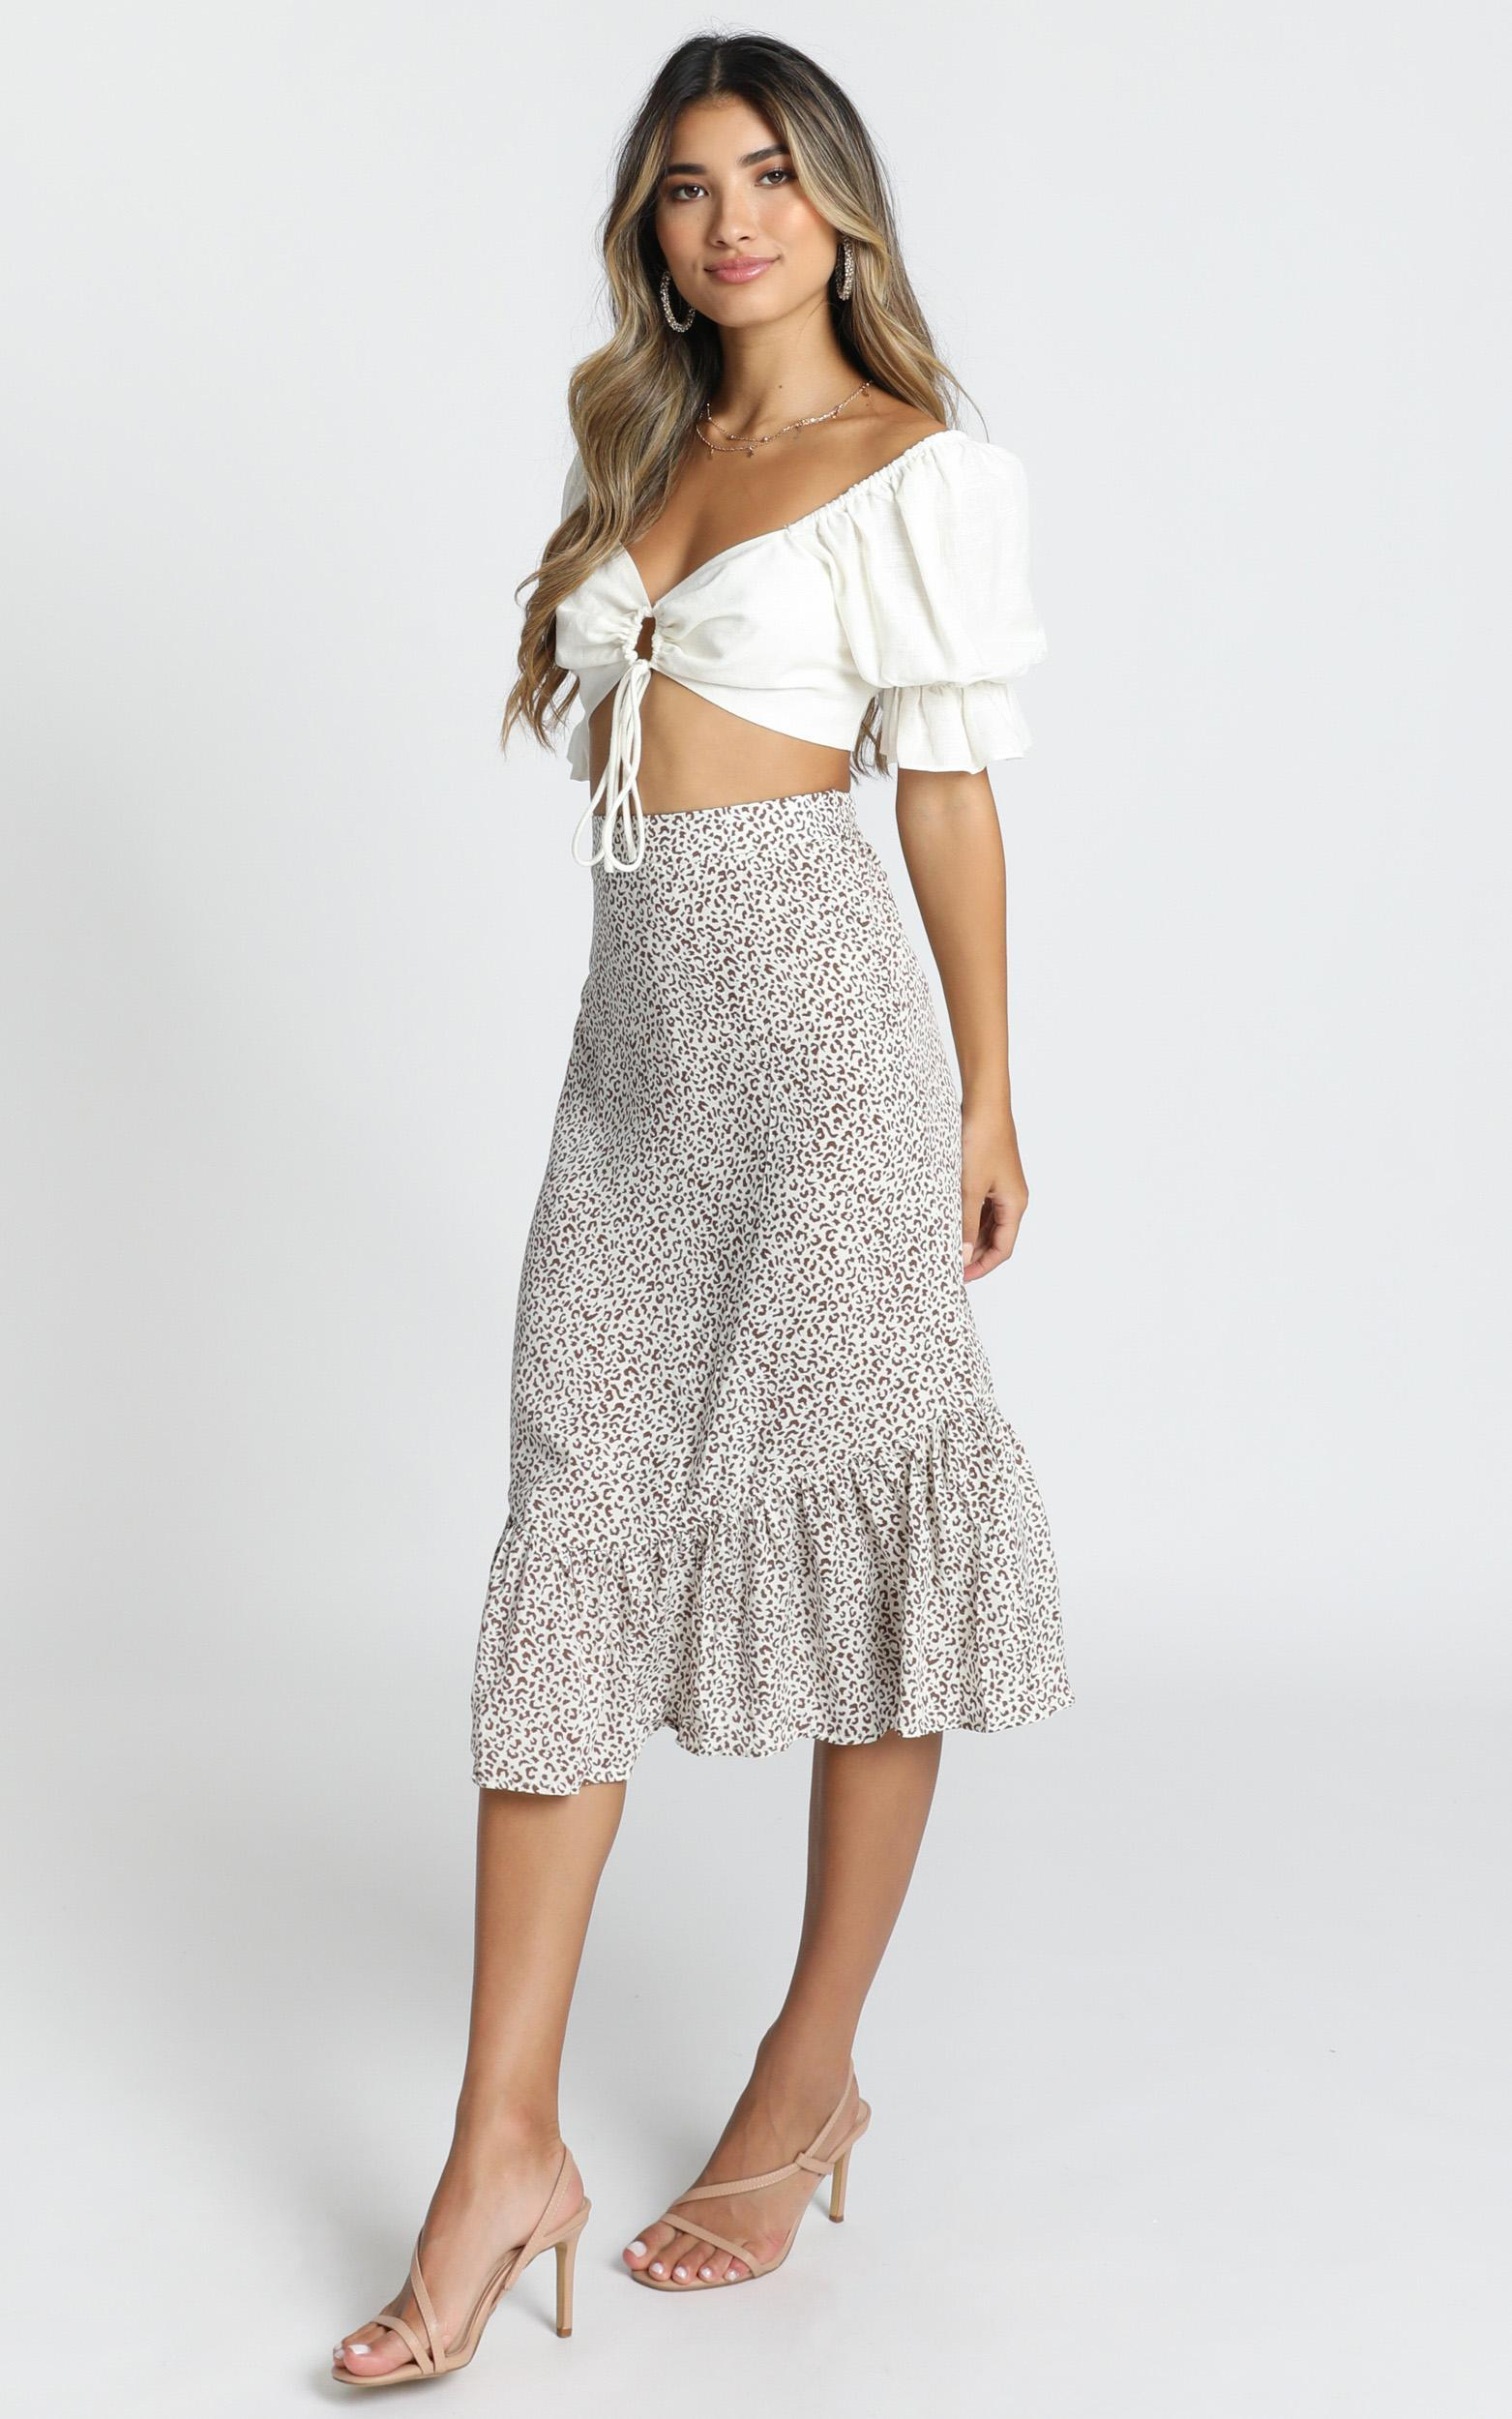 Wild Life Skirt in white leopard - 14 (XL), White, hi-res image number null